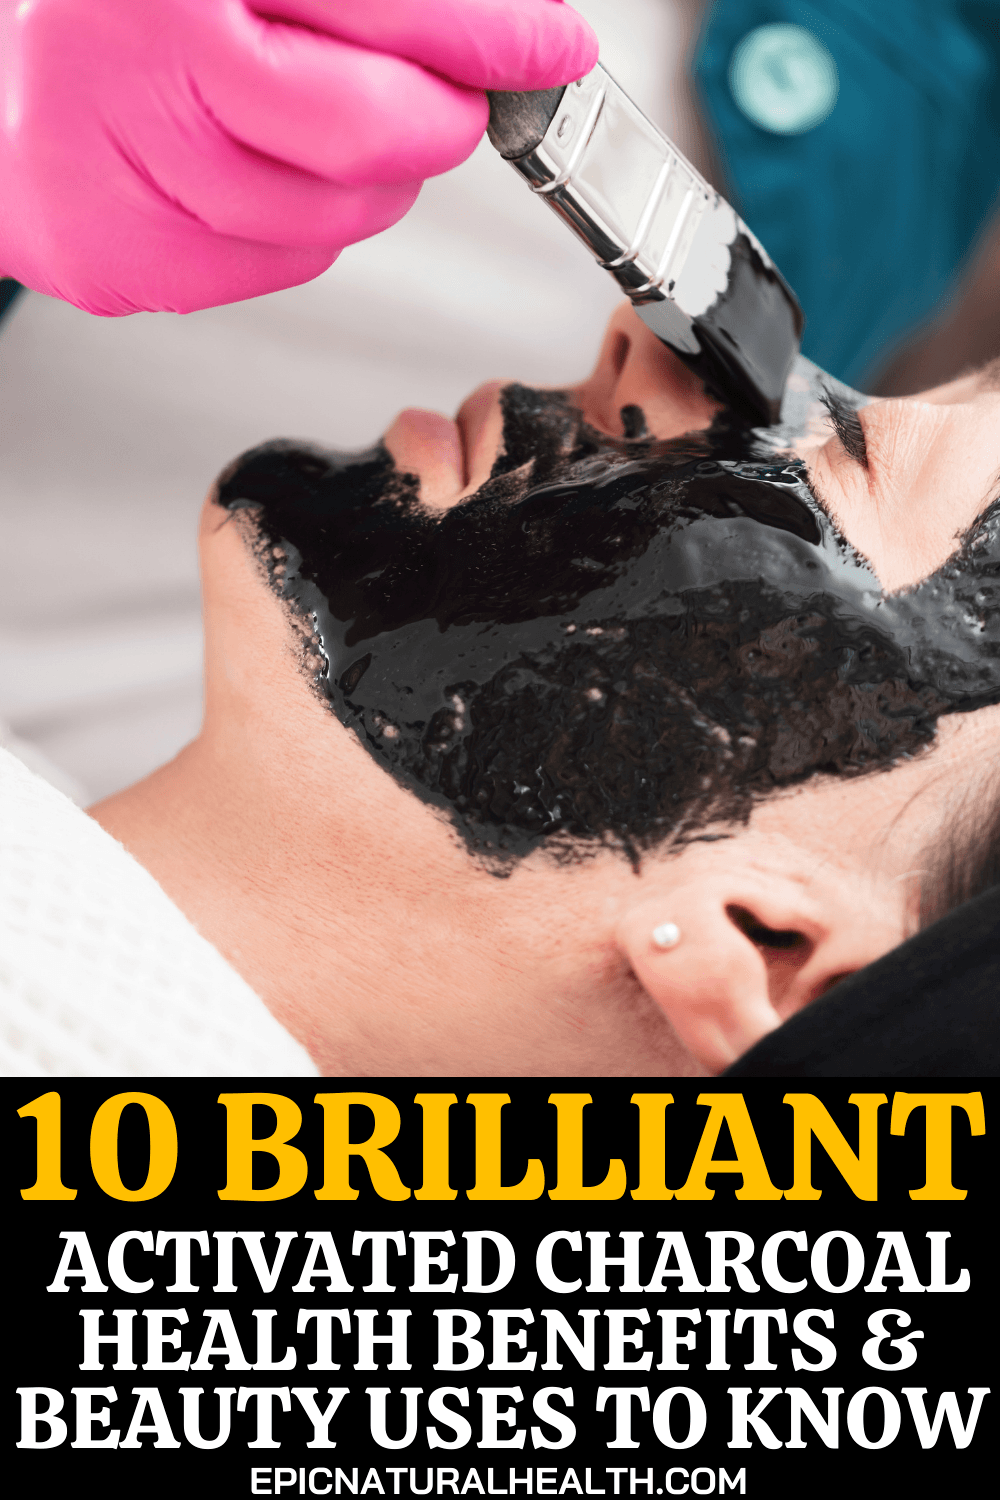 10 Brilliant Activated Charcoal Health Benefits and Beauty Uses to Know